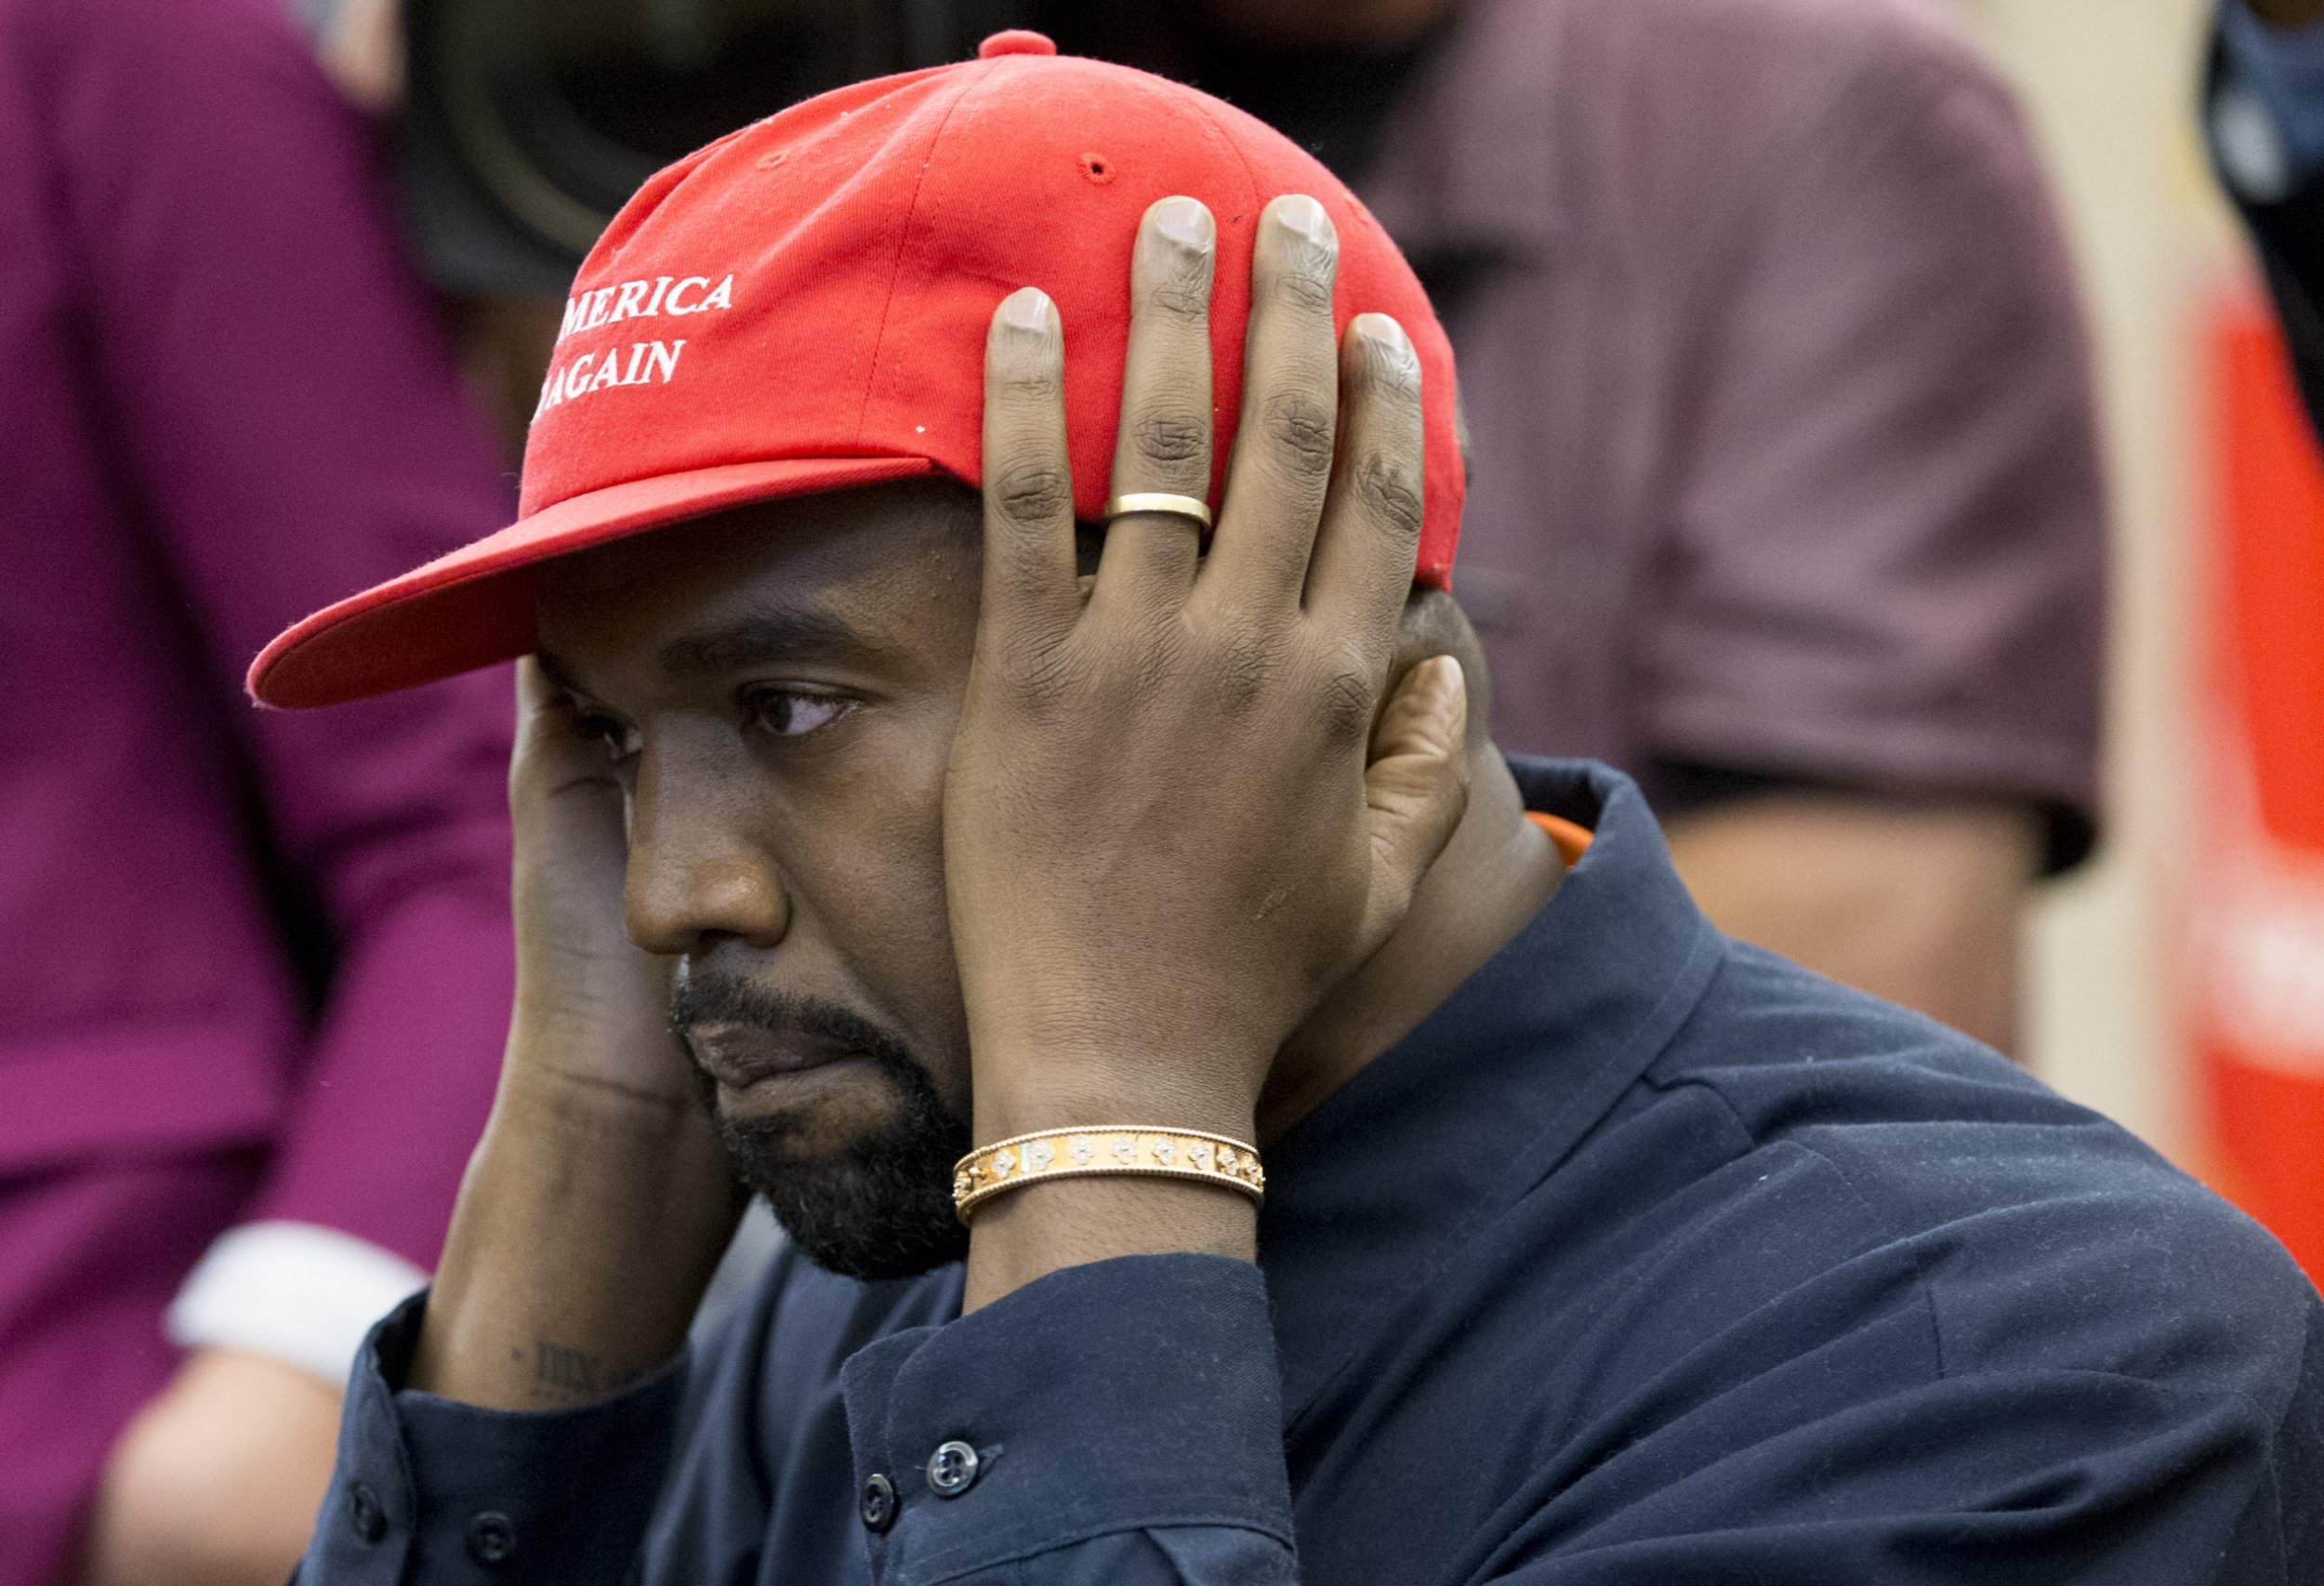 epa07086569 US entertainer Kanye West gestures while speaking during a meeting with US President Donald J. Trump in the Oval Office of the White House in Washington, DC, USA, 11 October 2018. Kanye West, who is a Trump supporter, met with the President to discuss prison reform and other issues. EPA/MICHAEL REYNOLDS